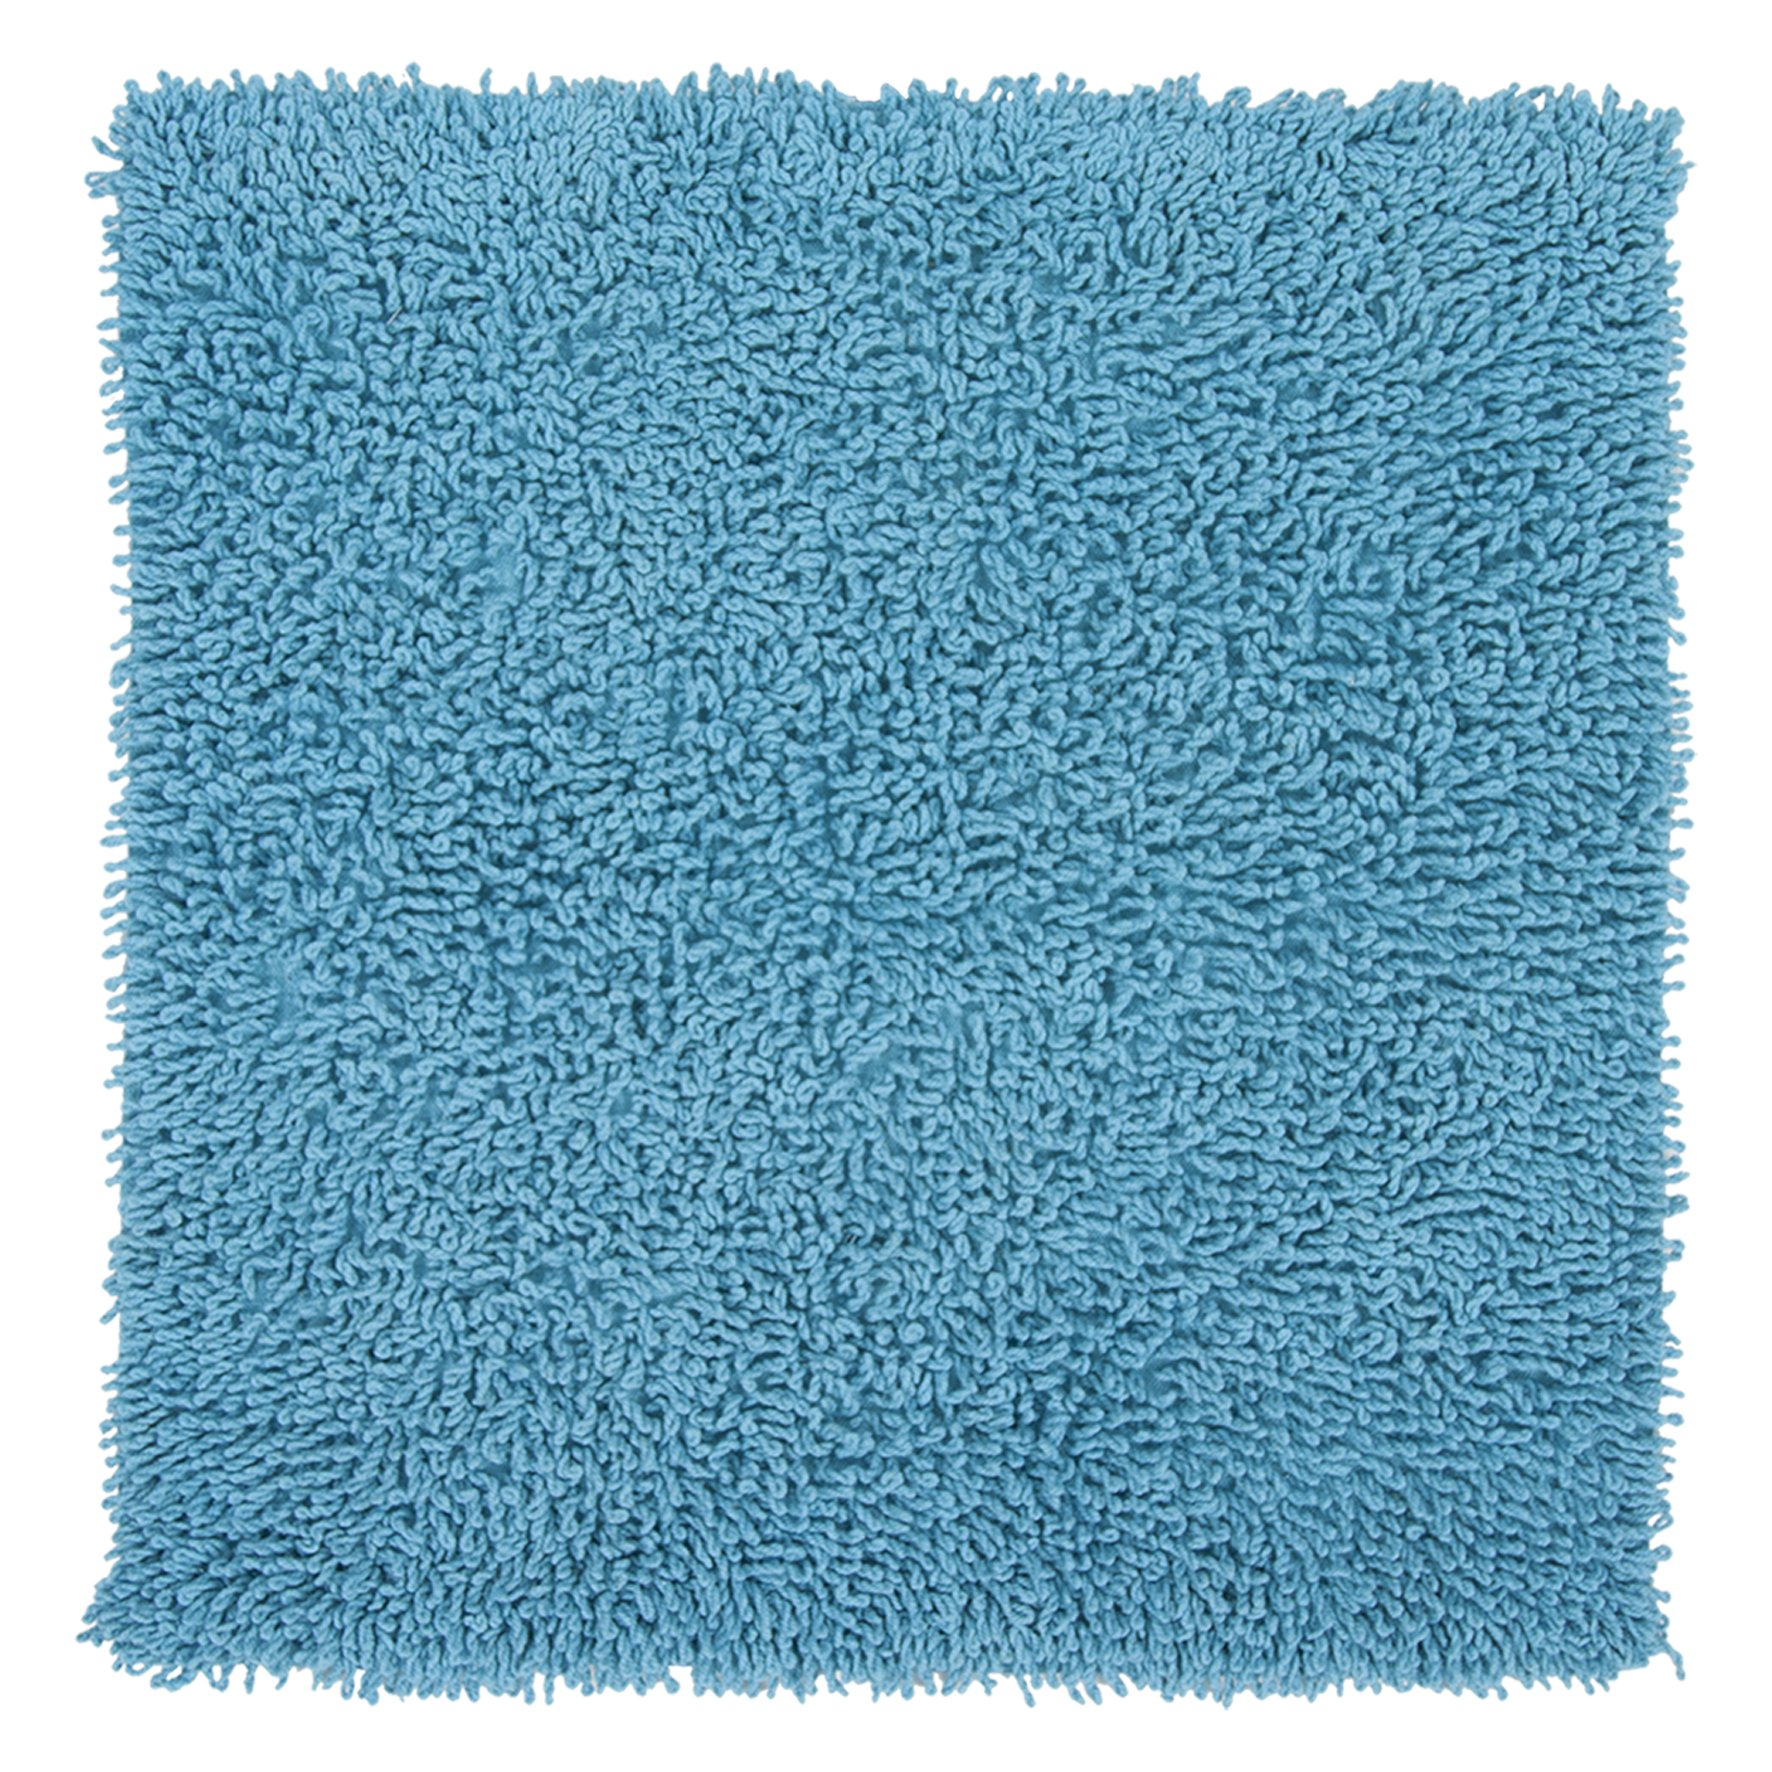 DIFFERNZ 31.102.25 Essence Bath Rug, Azure by Differnz